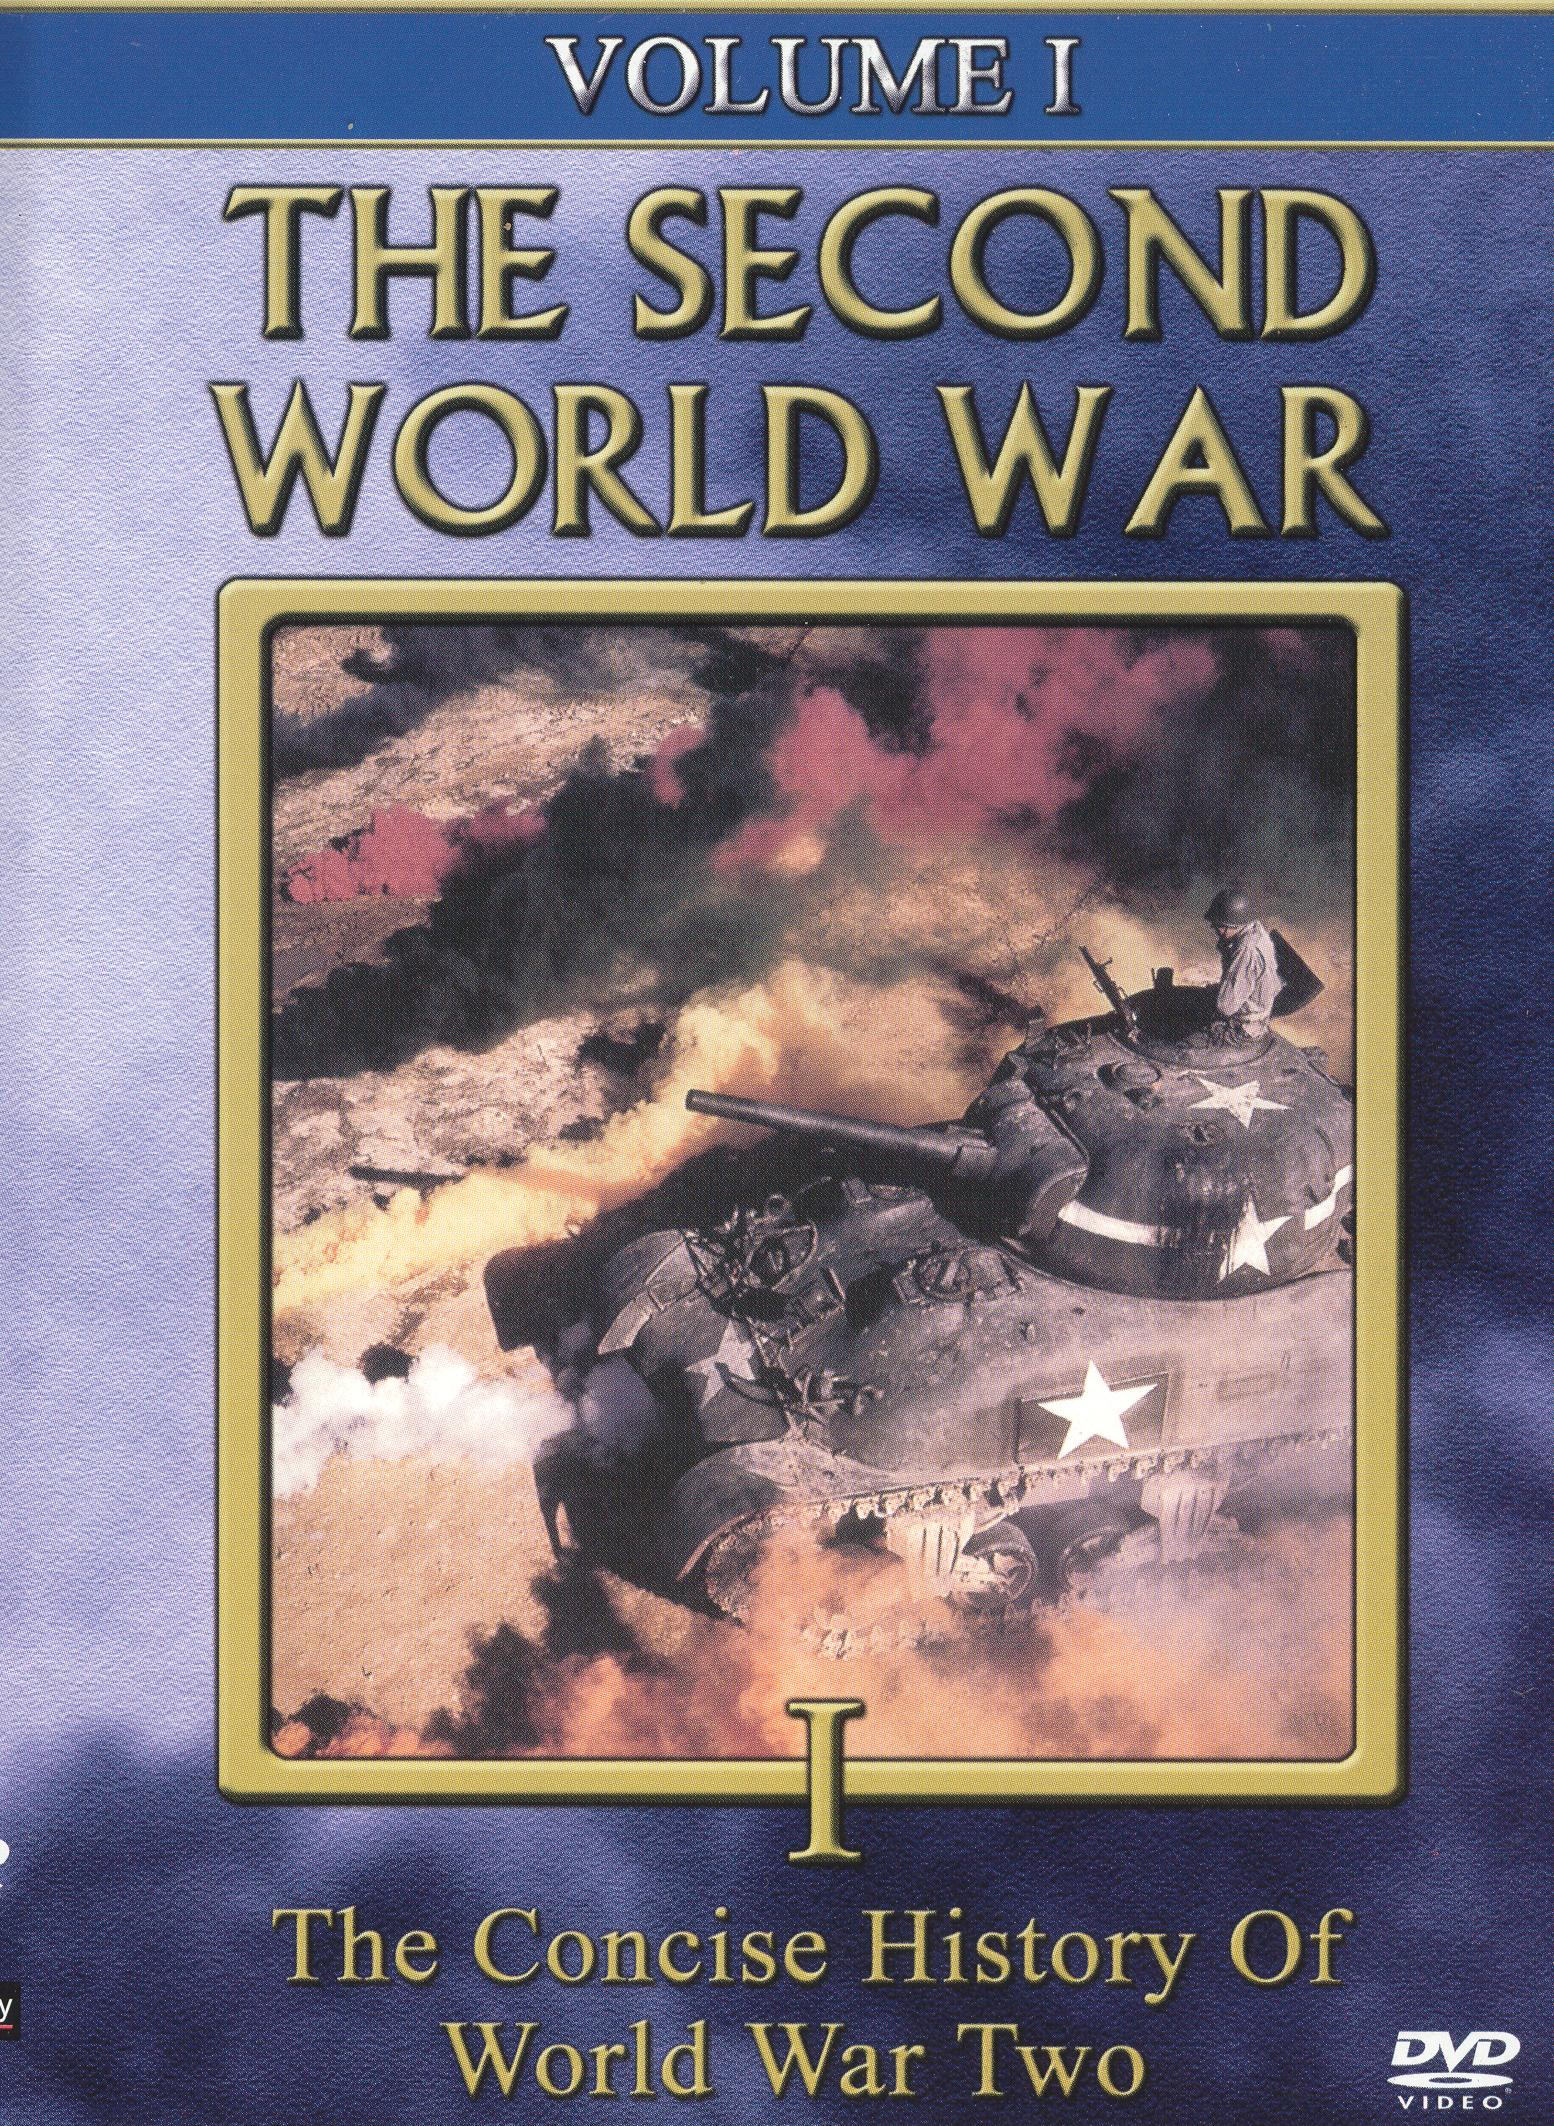 The Concise History of World War Two